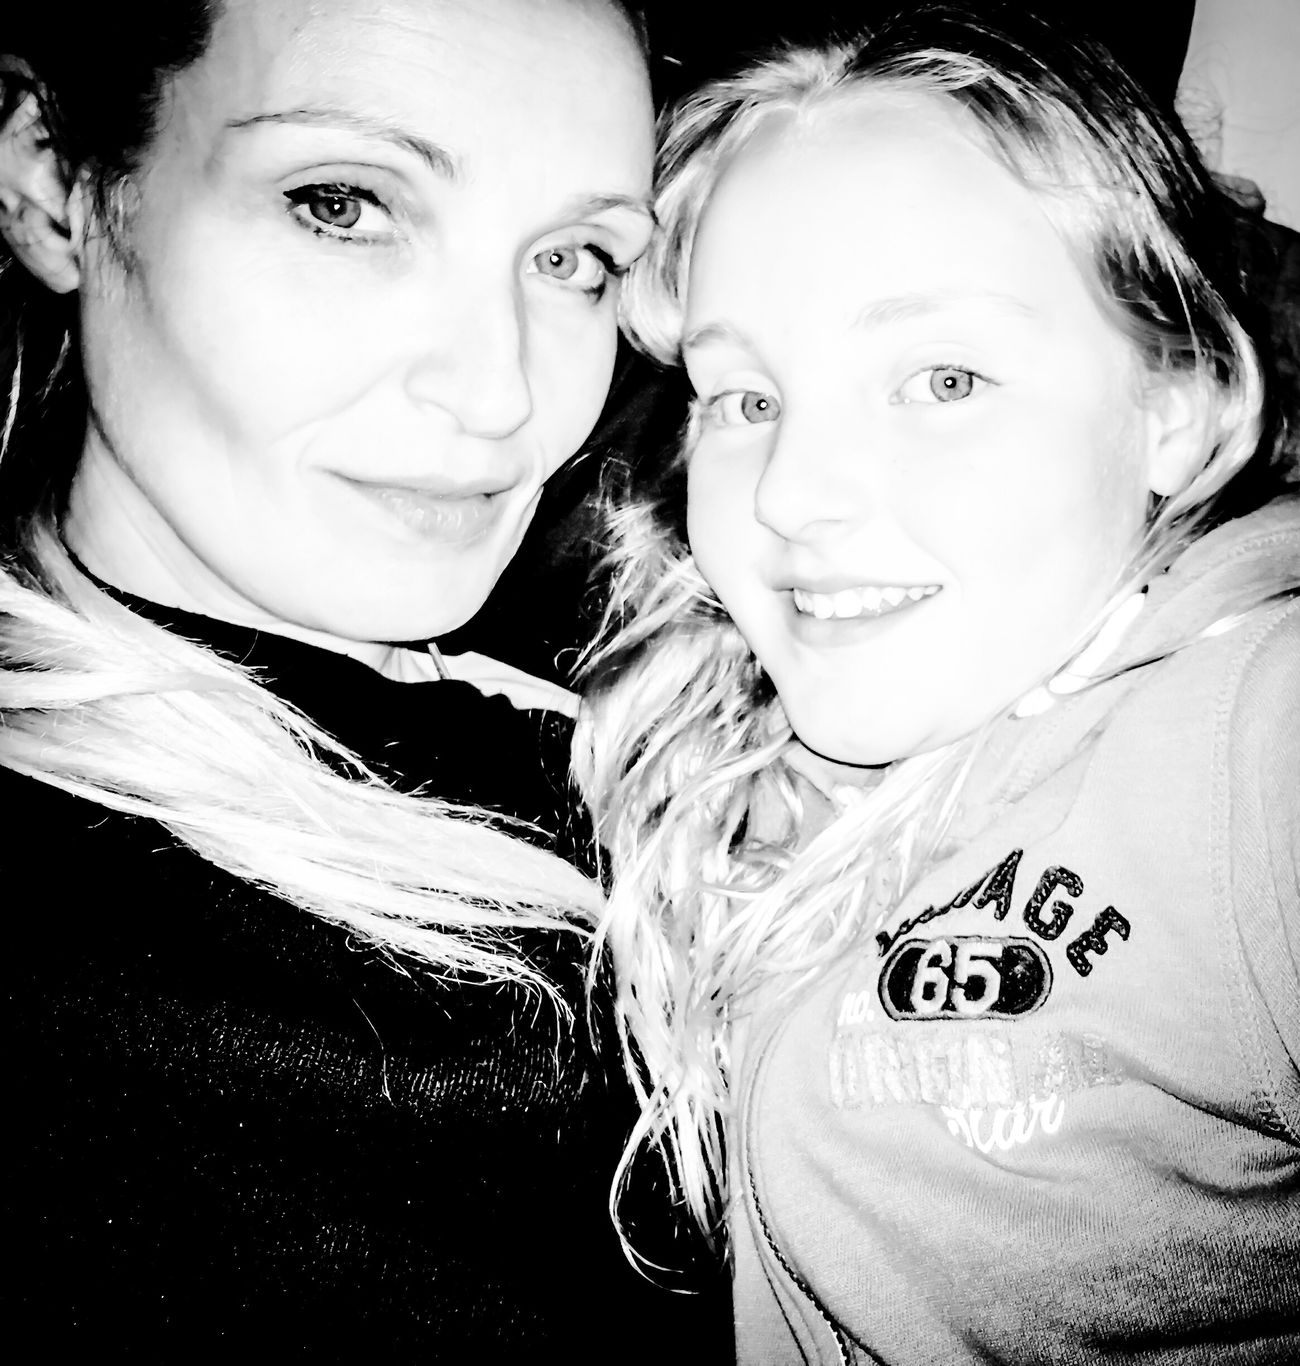 Me & My Girl  My Daughter The Wee One Black And White Mother & Daughter Black And White Photography Women Of EyeEm Scotland Love Family Mini Me Relaxing Hanging Out She's Actually Smiling, Not Pulling A Face! Girl